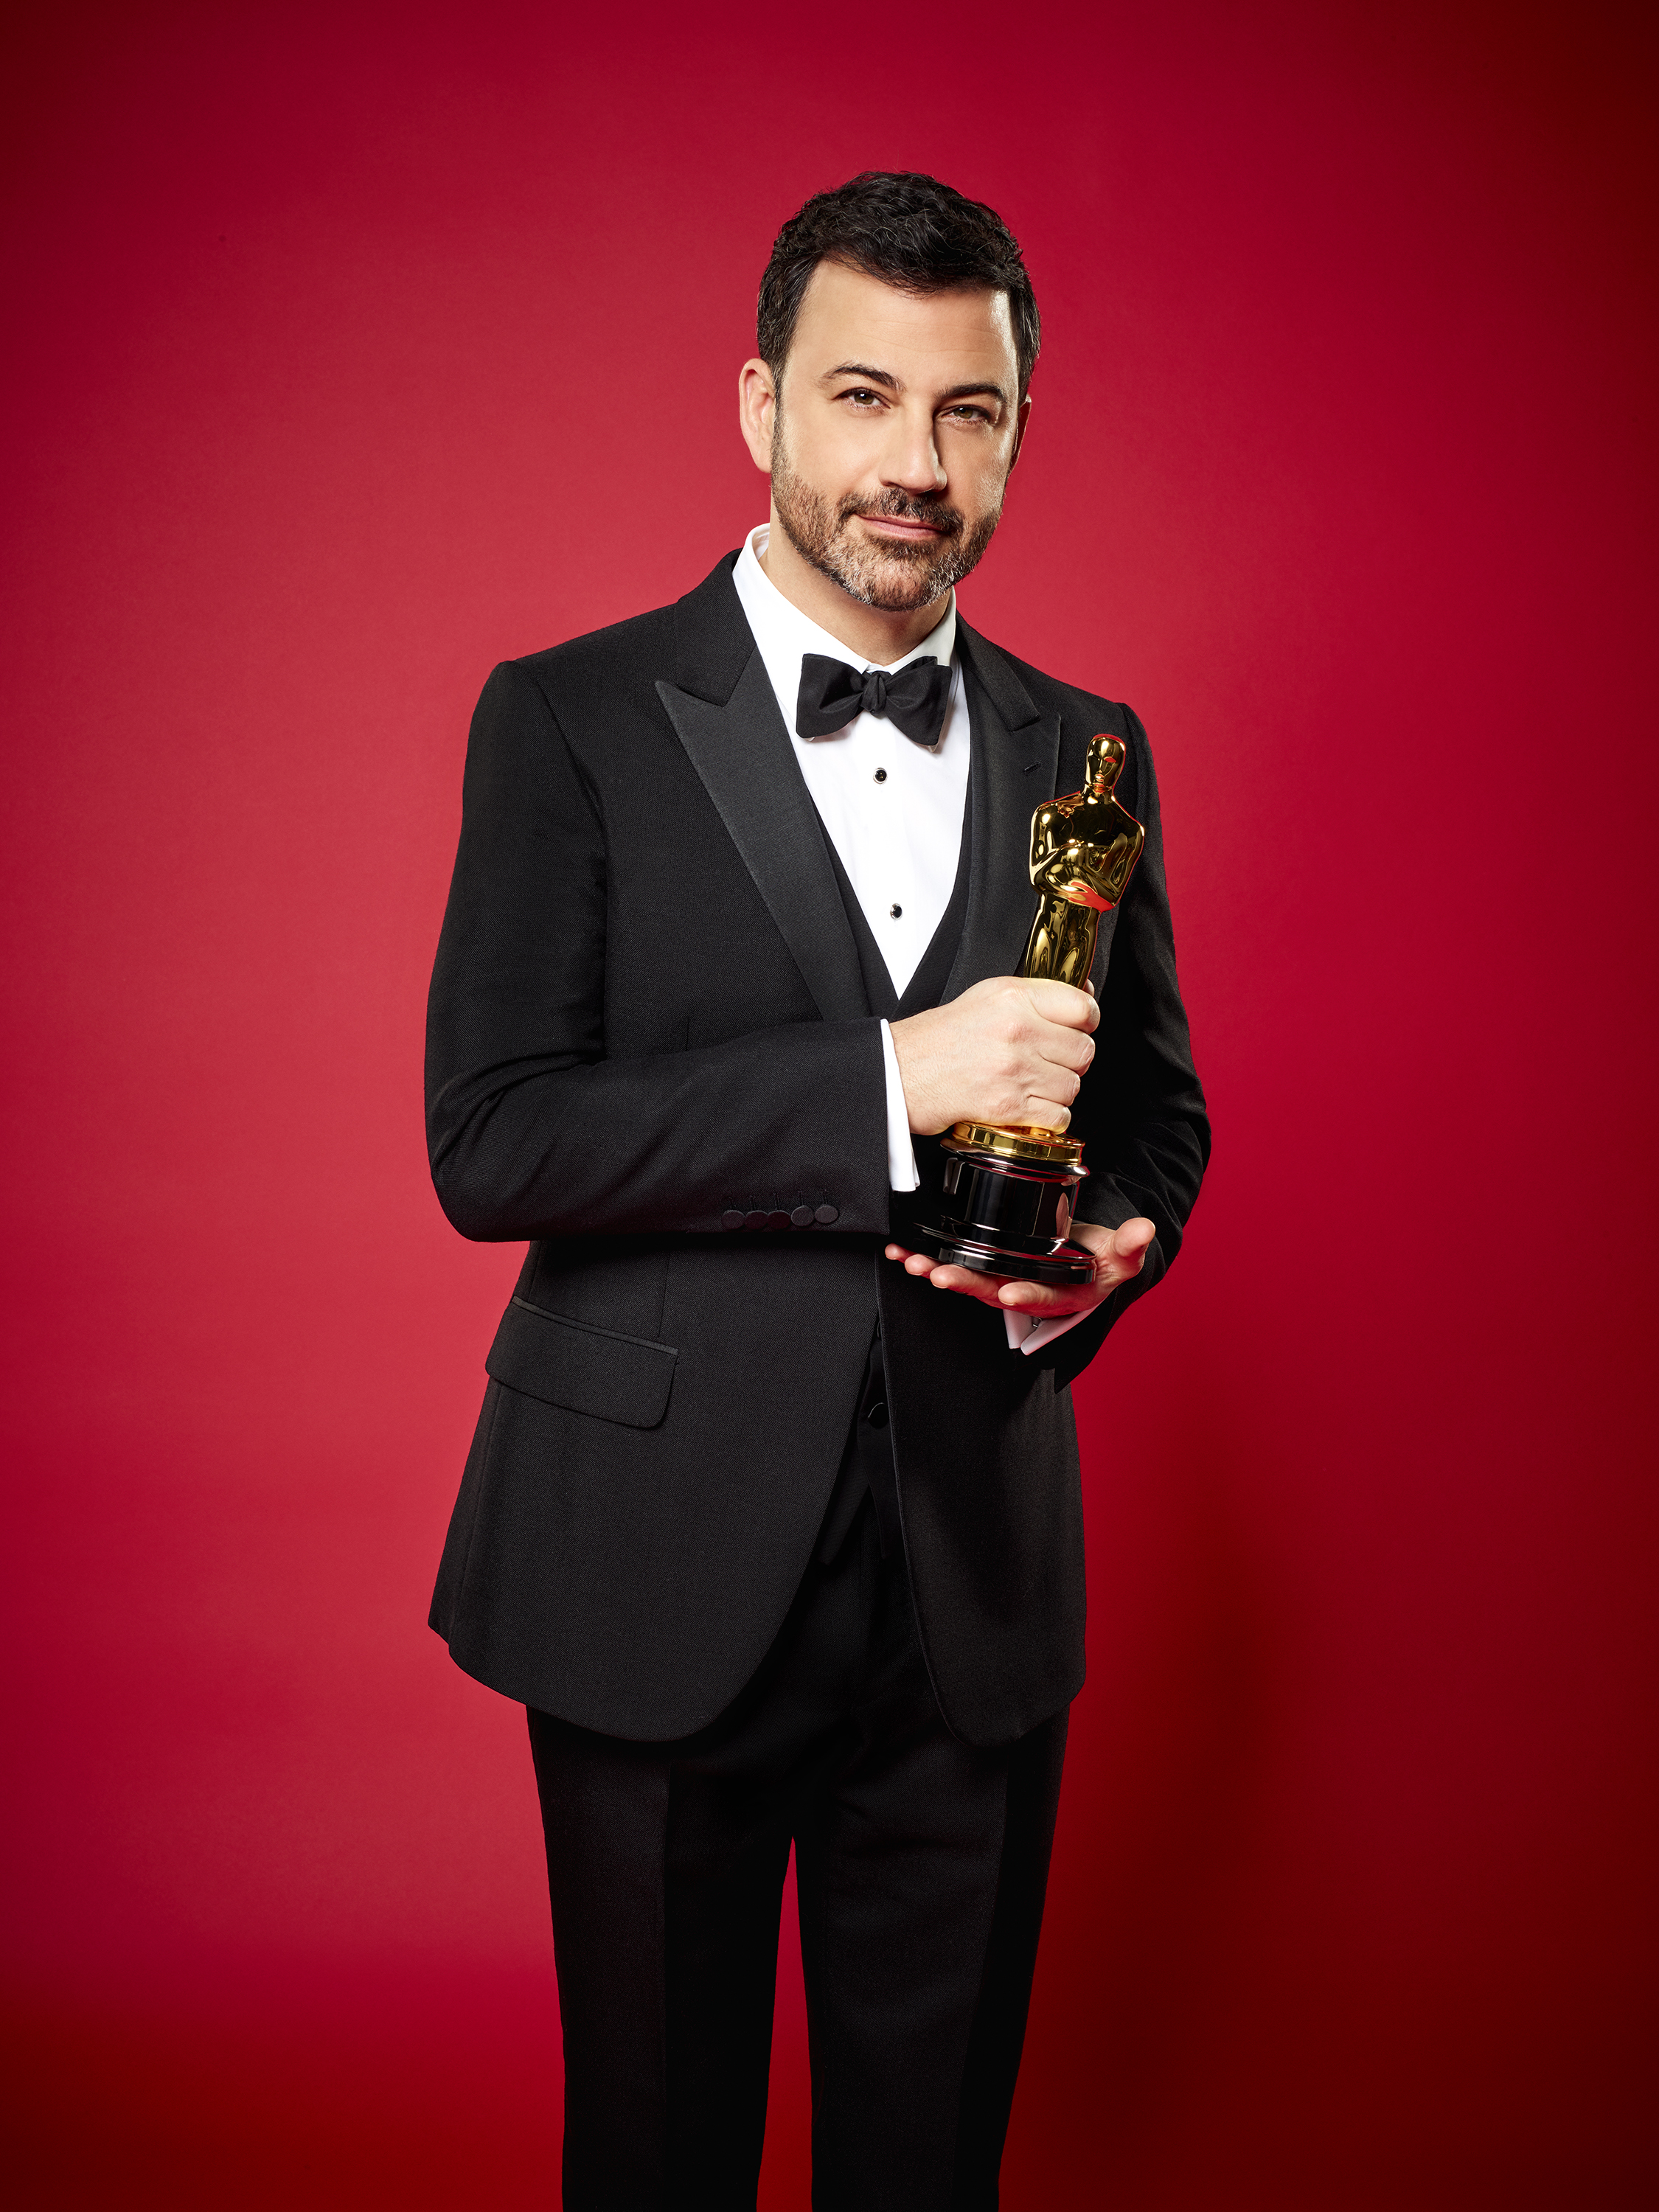 Jimmy Kimmel hosted this year's Oscars and everybody loved it